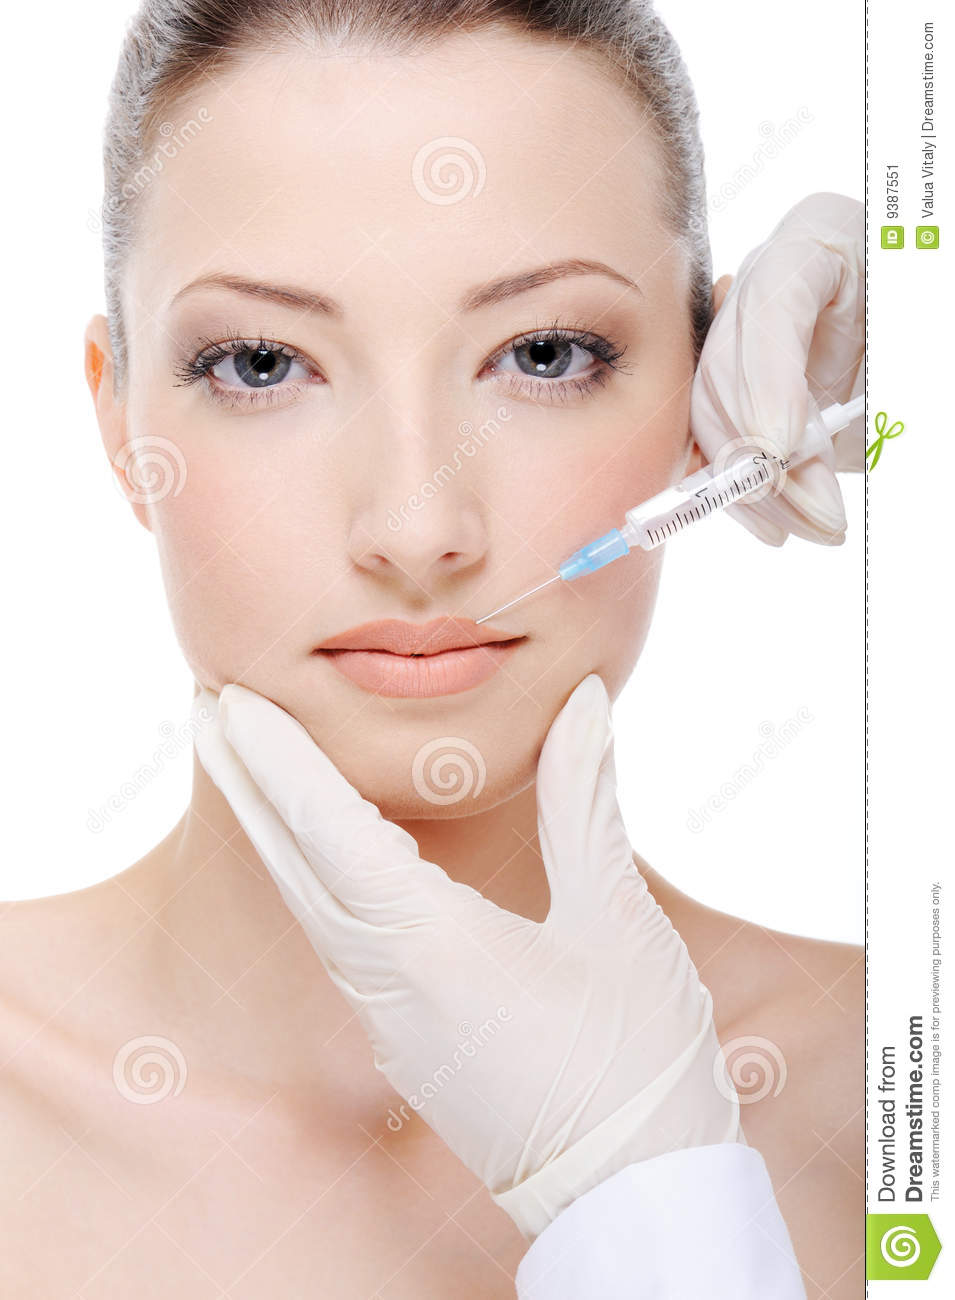 BOTOX® giving injection